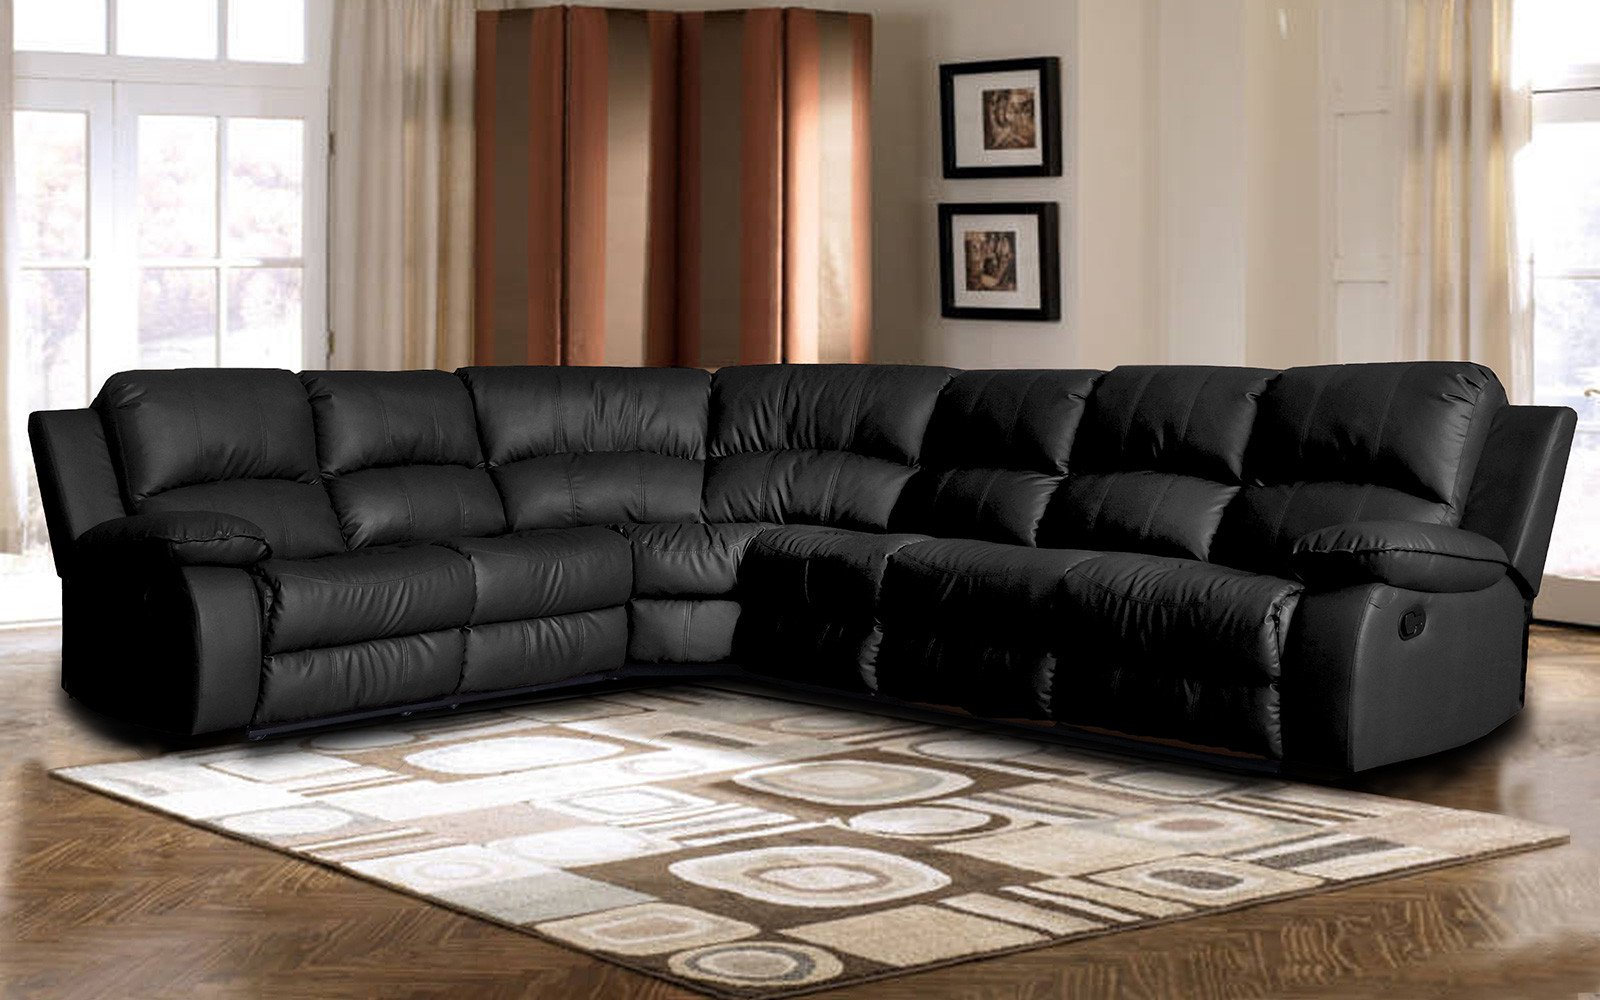 Swell Classic Oversize And Overstuffed Corner Bonded Leather Sectional With 2 Reclining Seats Customarchery Wood Chair Design Ideas Customarcherynet